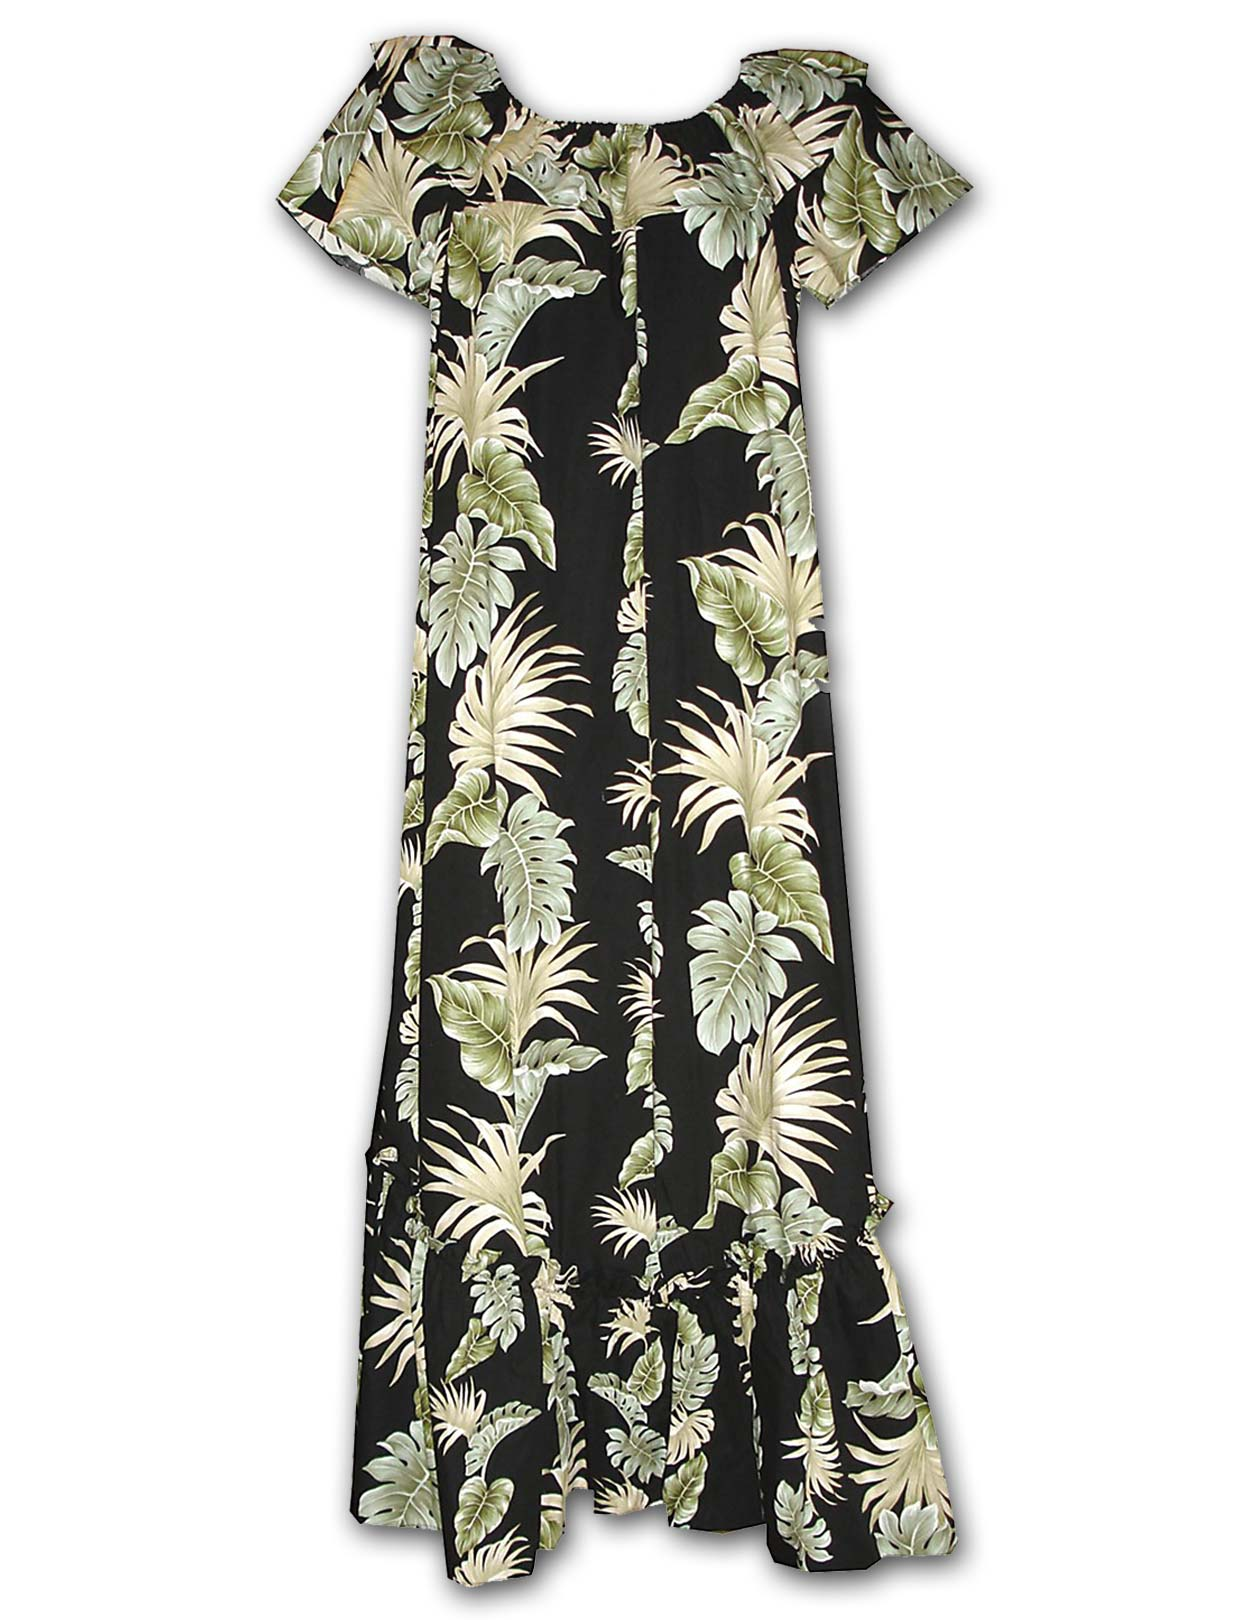 Lei of Aloha Long Muumuu Hawaiian Dress: Shaka Time Hawaii Clothing ...